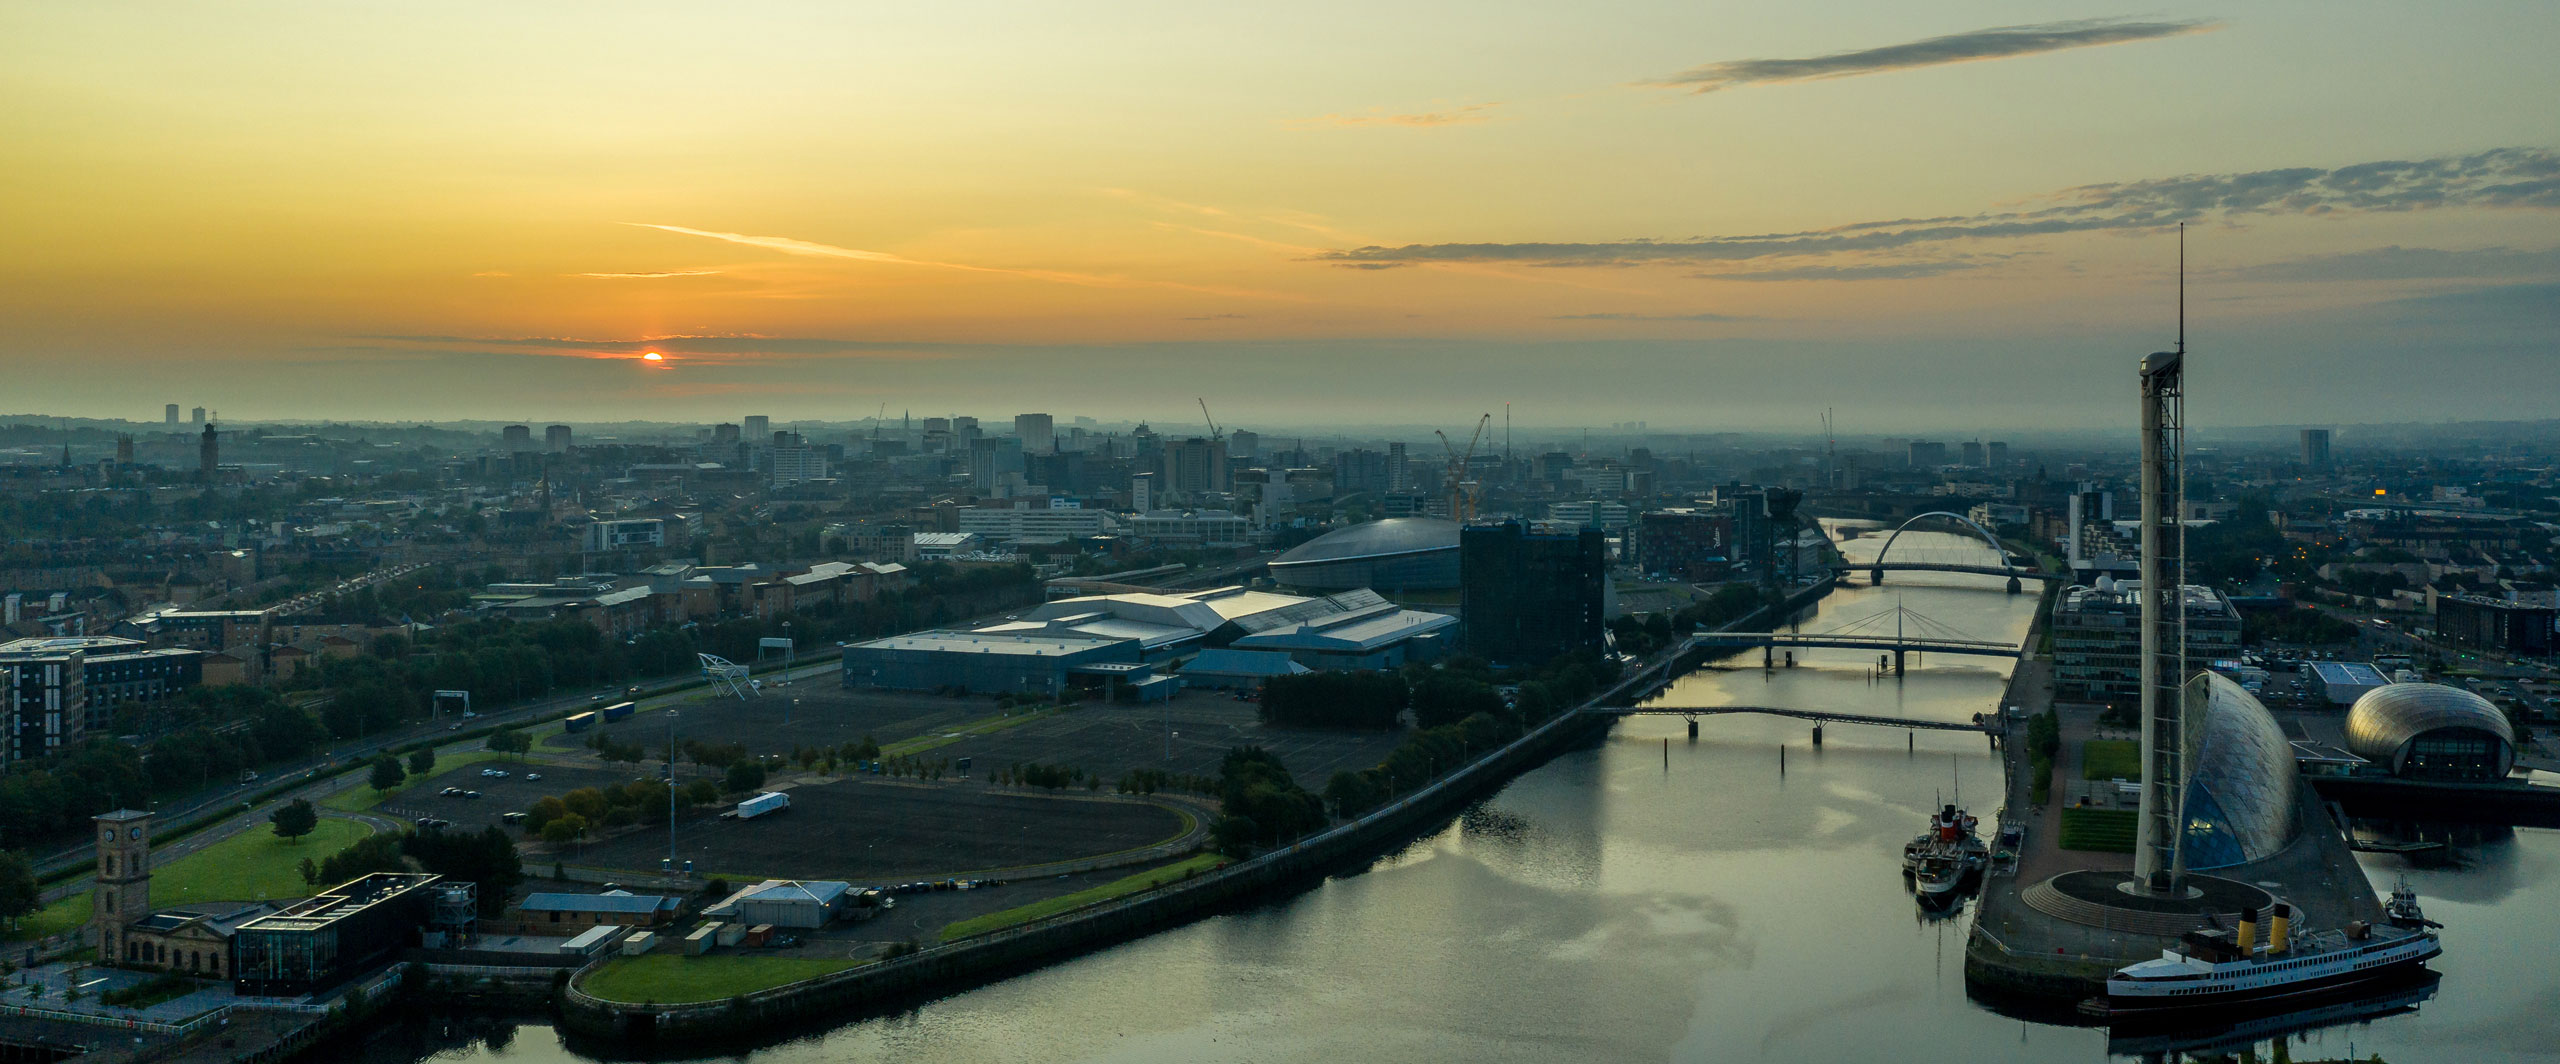 Dawn over the city of Glasgow, Scotland, with River Clyde - Attribution: Ian Dick - Licence: CC 2.0 - https://creativecommons.org/licenses/by/2.0/deed.en - Source: https://commons.wikimedia.org/wiki/File:Dawn_over_Glasgow_(48659596342).jpg